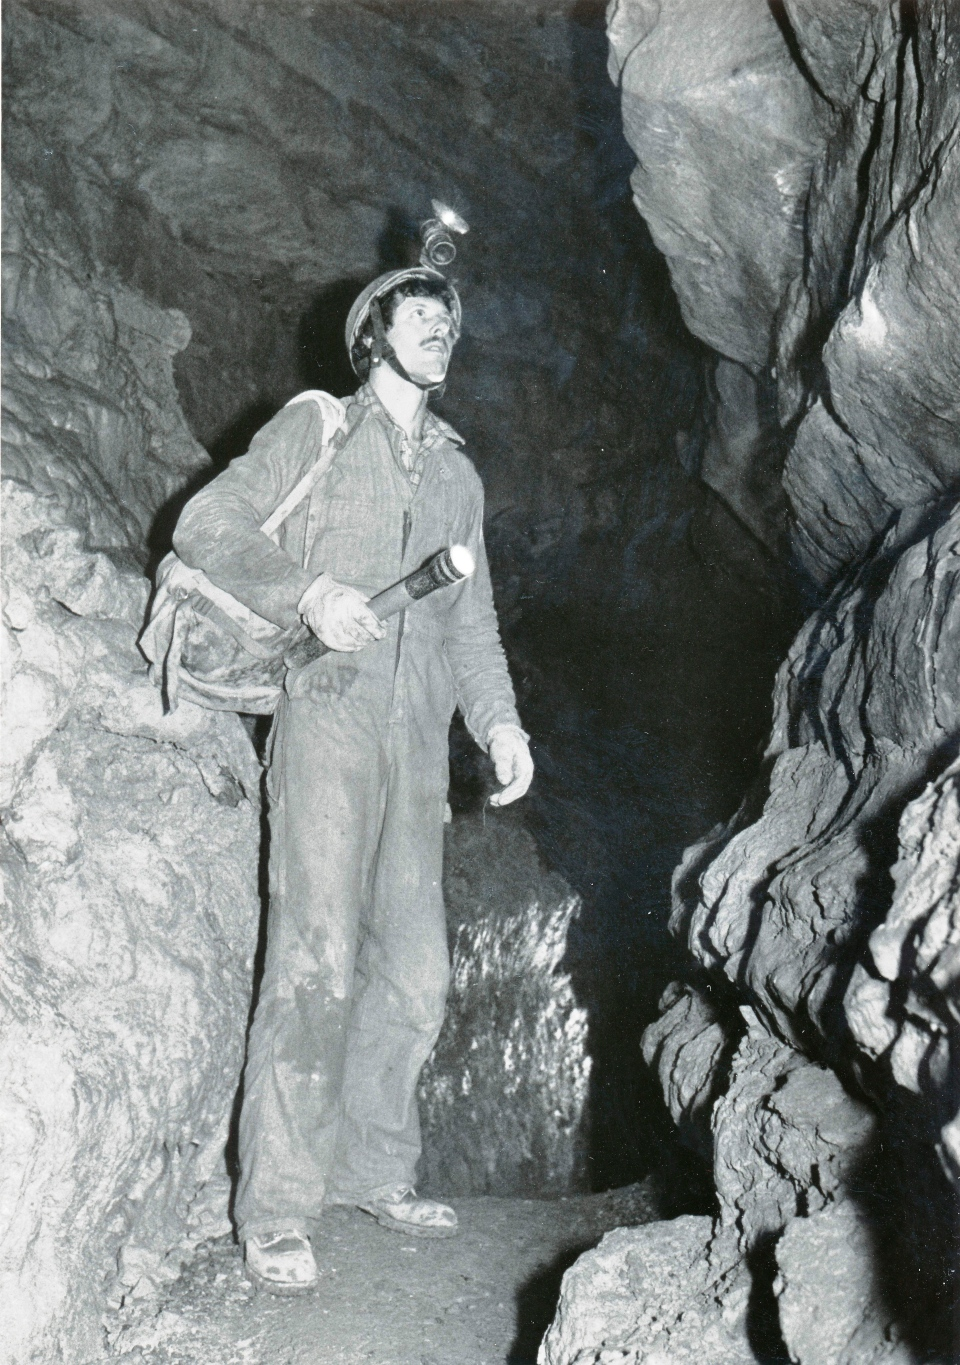 In this 1980's photo provided by John Ackerman, Ackerman stands inside his Spring Valley Caverns near Spring Valley, Minn. Ackerman, who has discovered various caves in the area that he is helping preserve, plans to be buried inside the cave when he dies. (AP Photo/Courtesy John Ackerman)